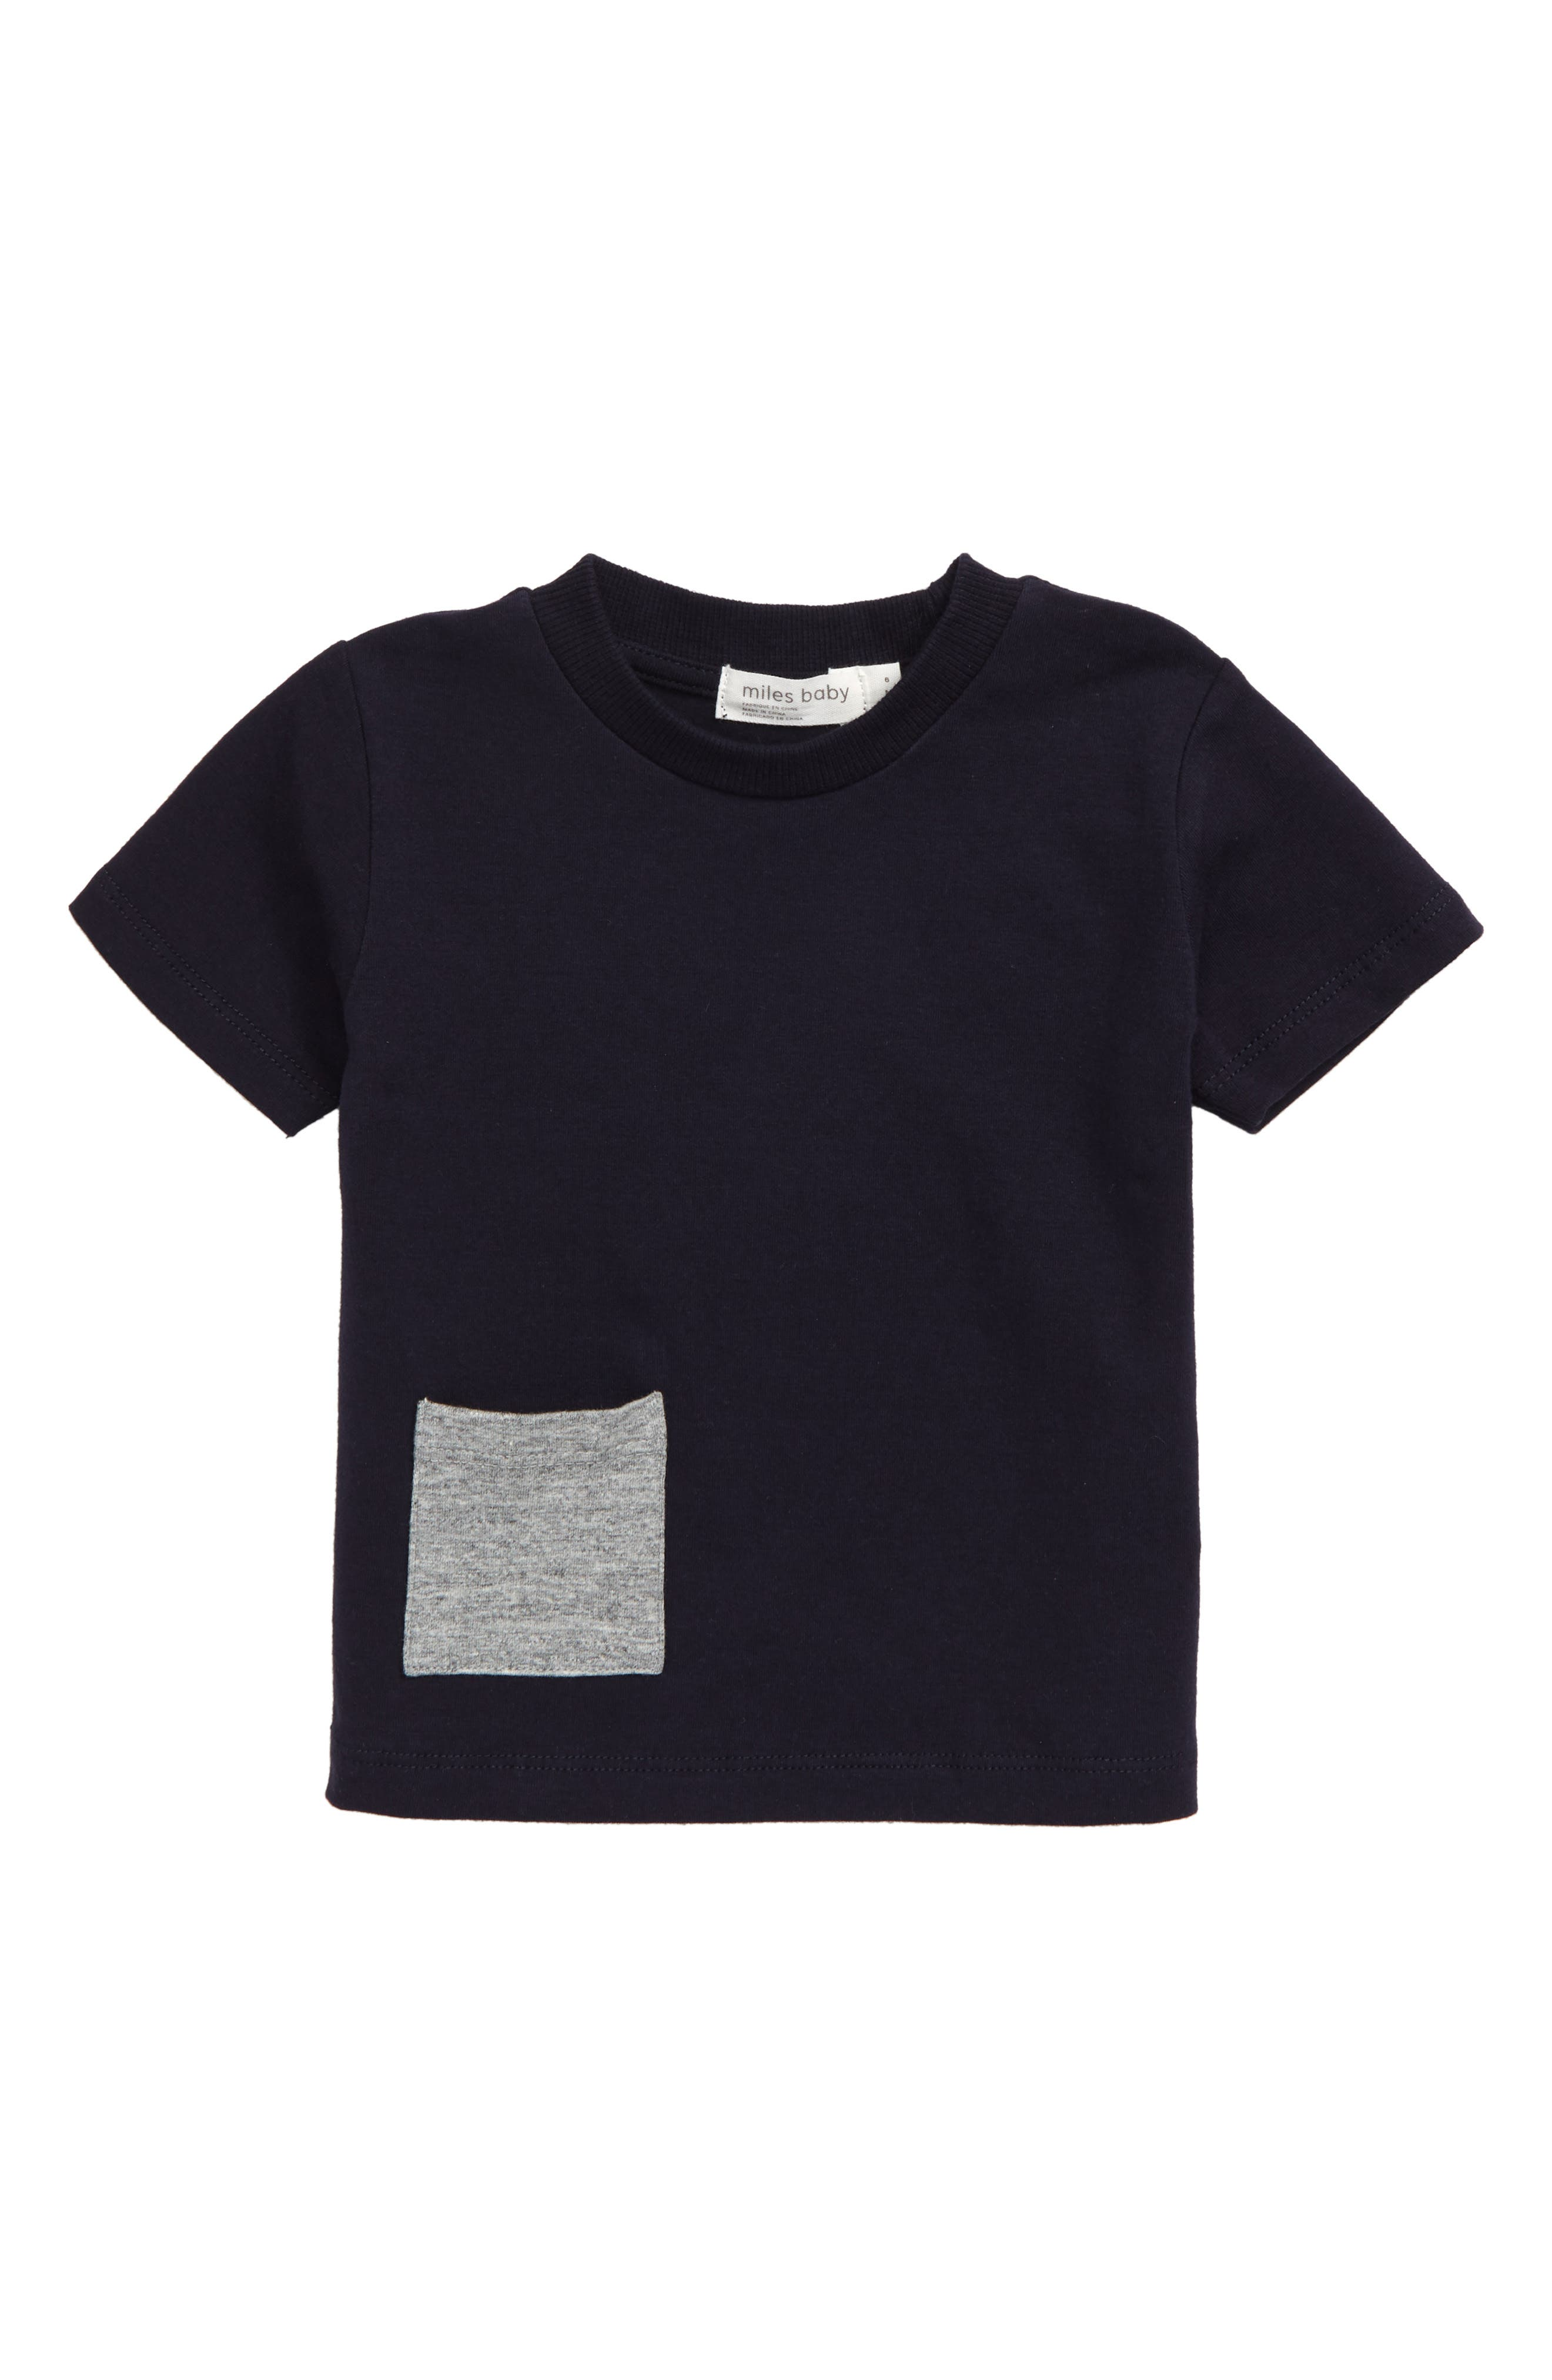 This classic crewneck featuring a contrast patch pocket is cut from soft, stretchy organic cotton and is an essential building block to any great wardrobe. Style Name: Miles Baby Stretch Organic Cotton T-Shirt (Baby). Style Number: 5886433 1. Available in stores.